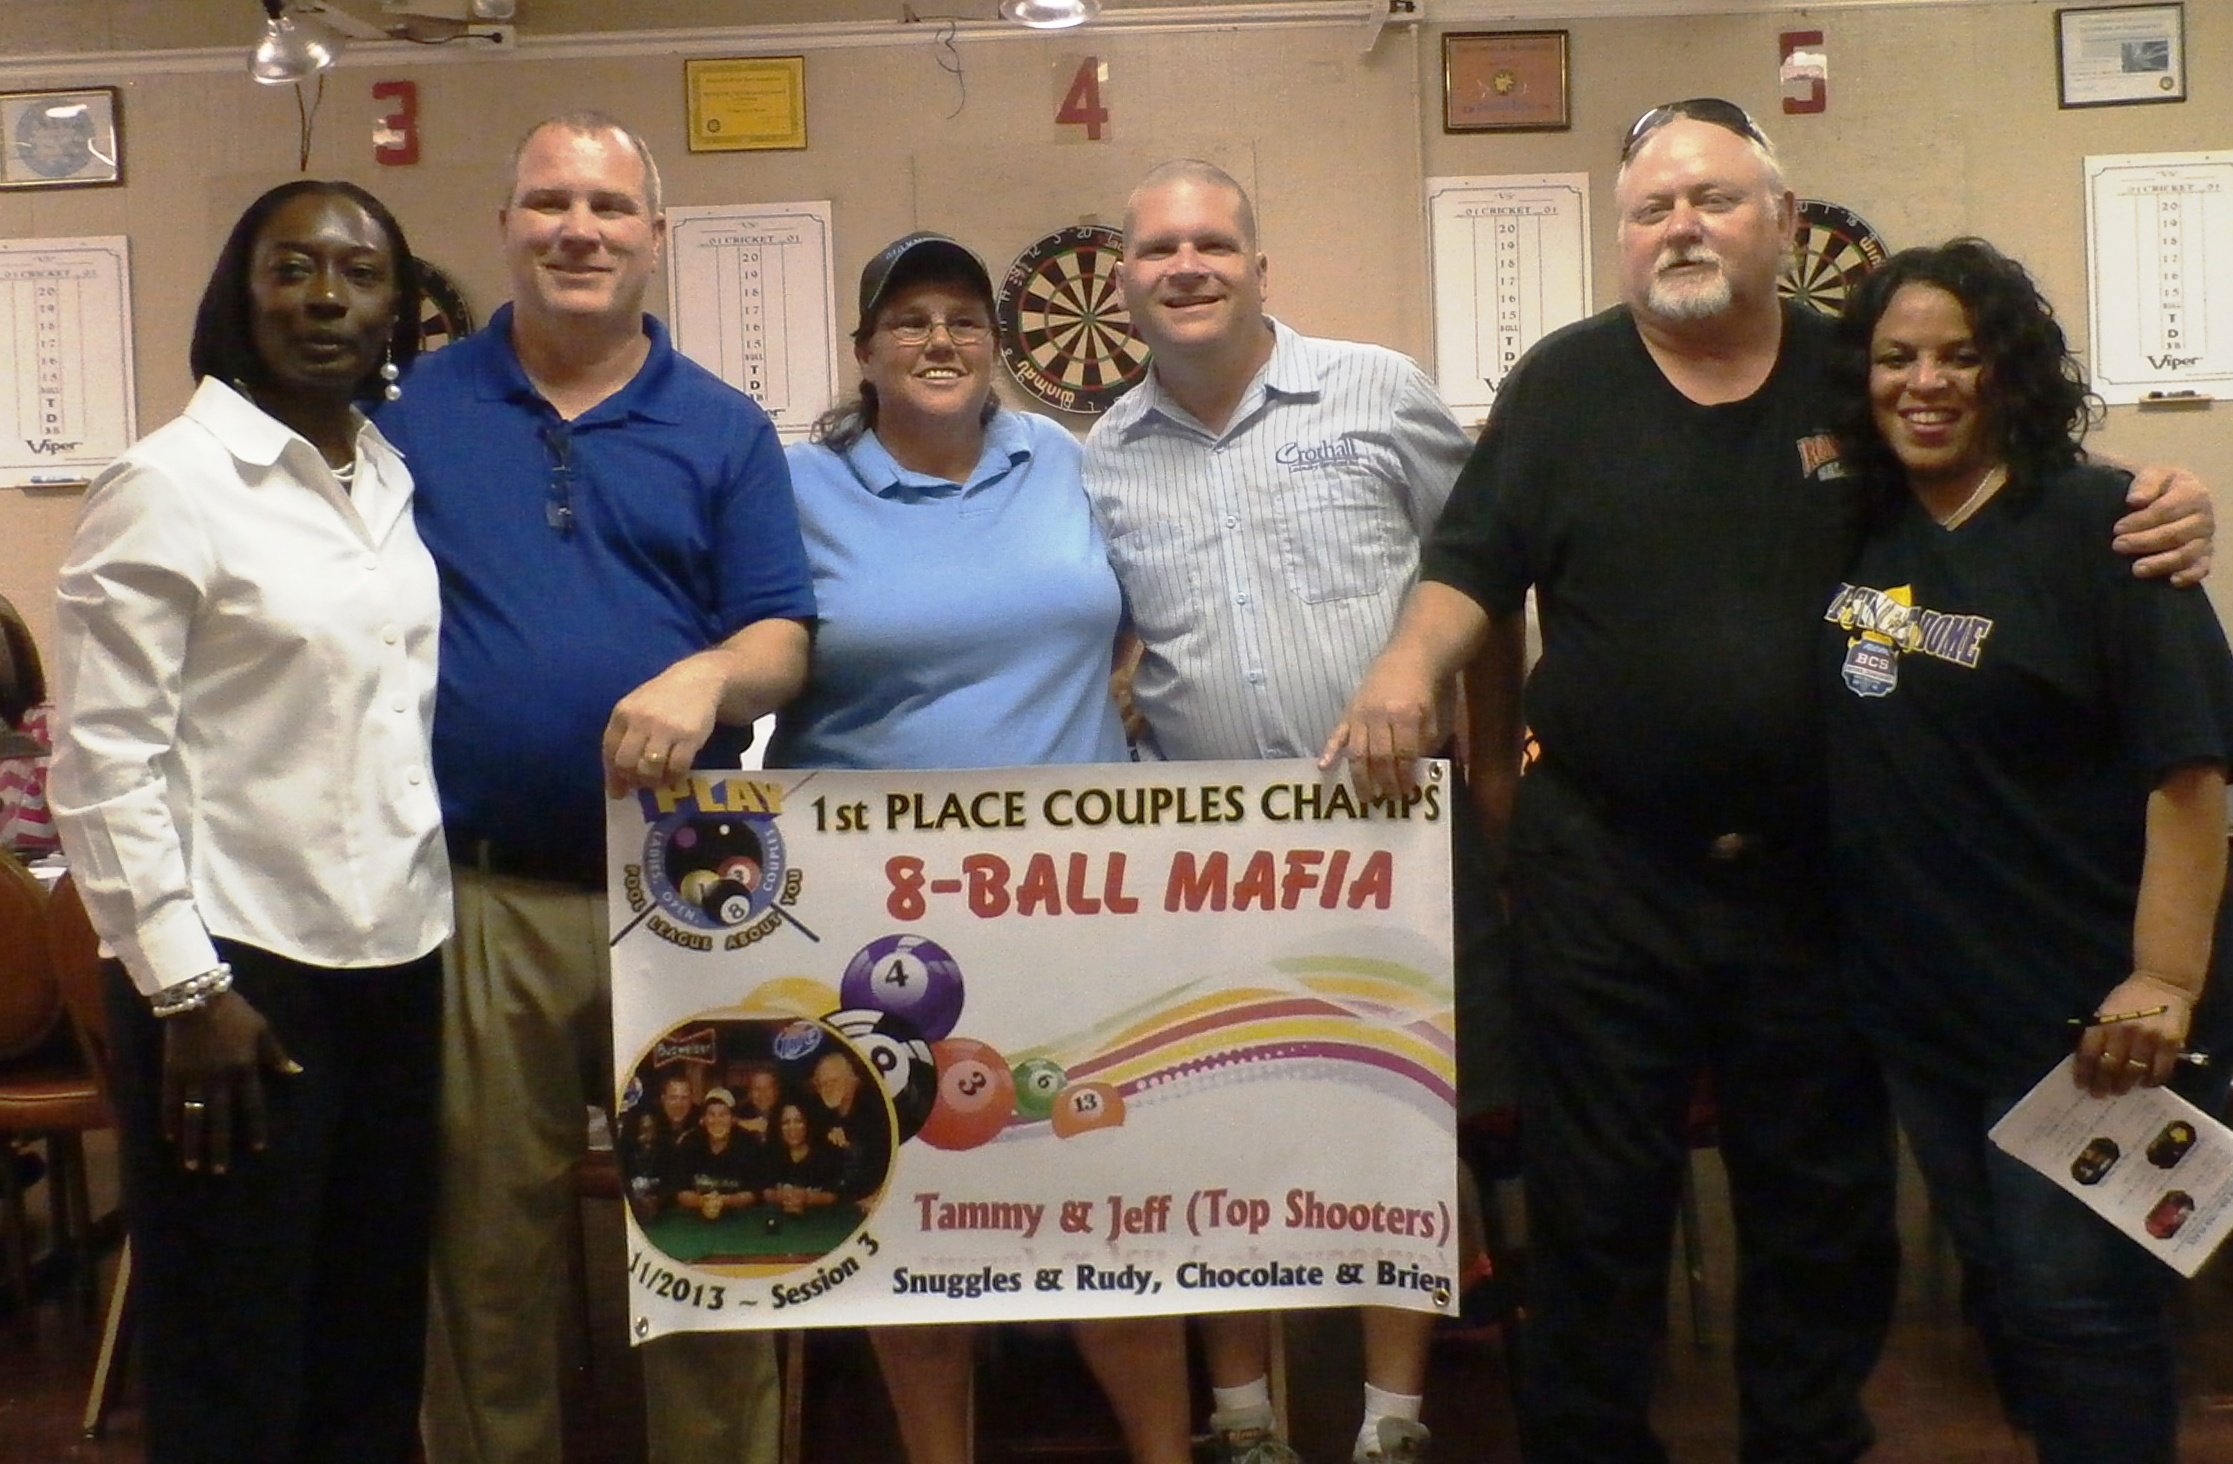 8-Ball Mafia (S3) Champs